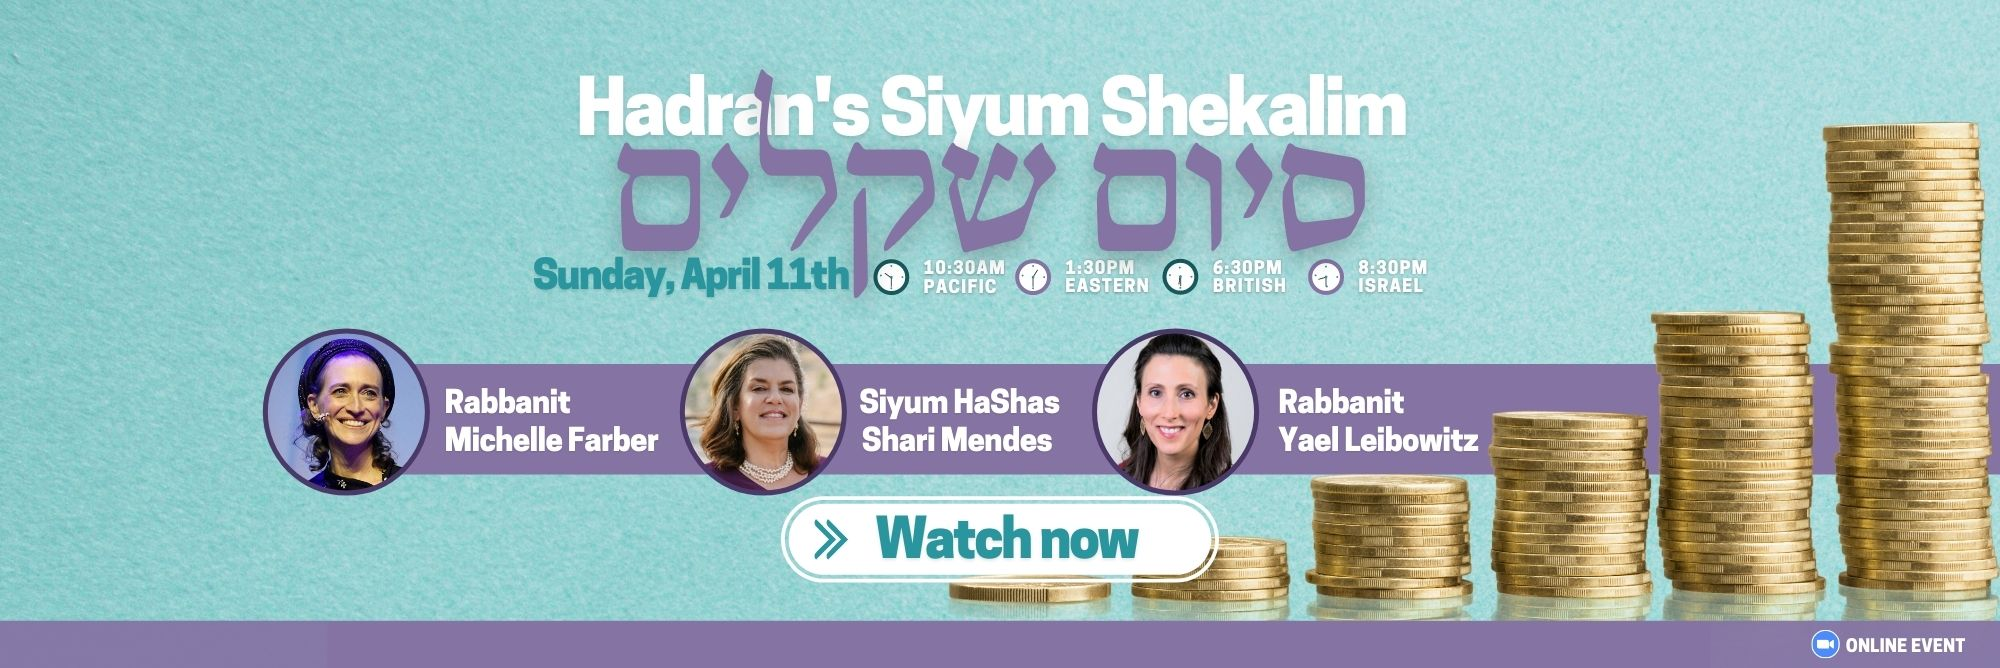 watch siyum shekalim